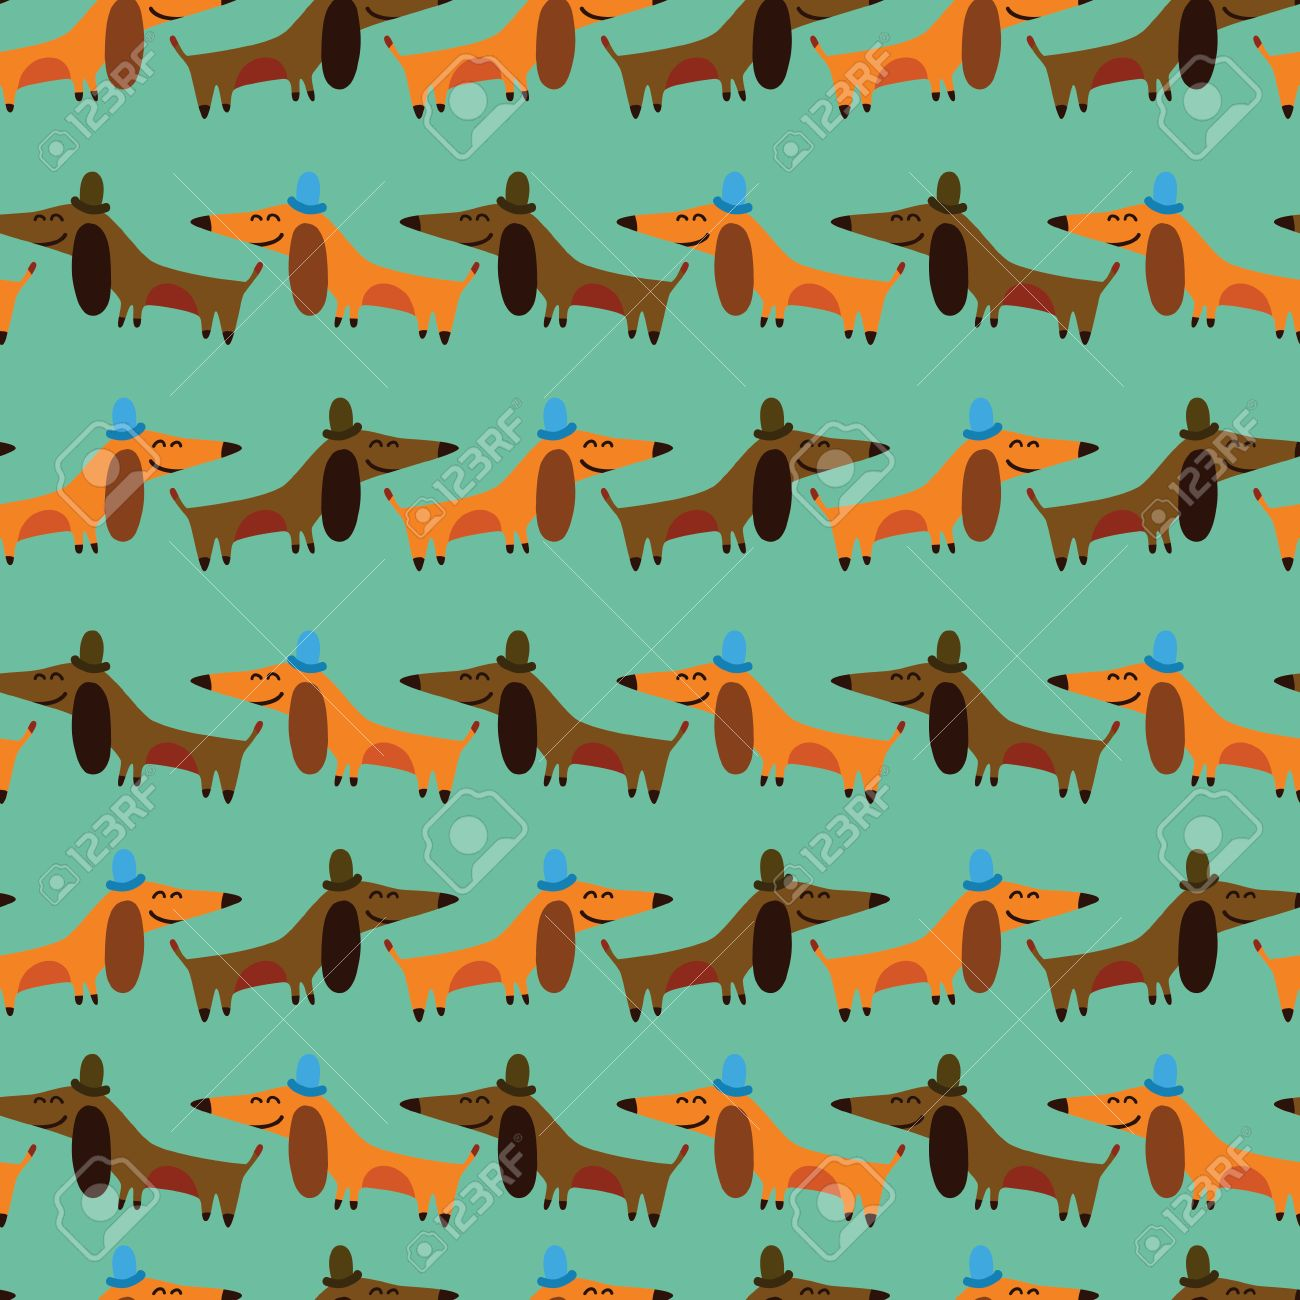 Funny Dachshunds Cartoon Seamless Pattern For Childish Designs Can Be Used Wallpaper